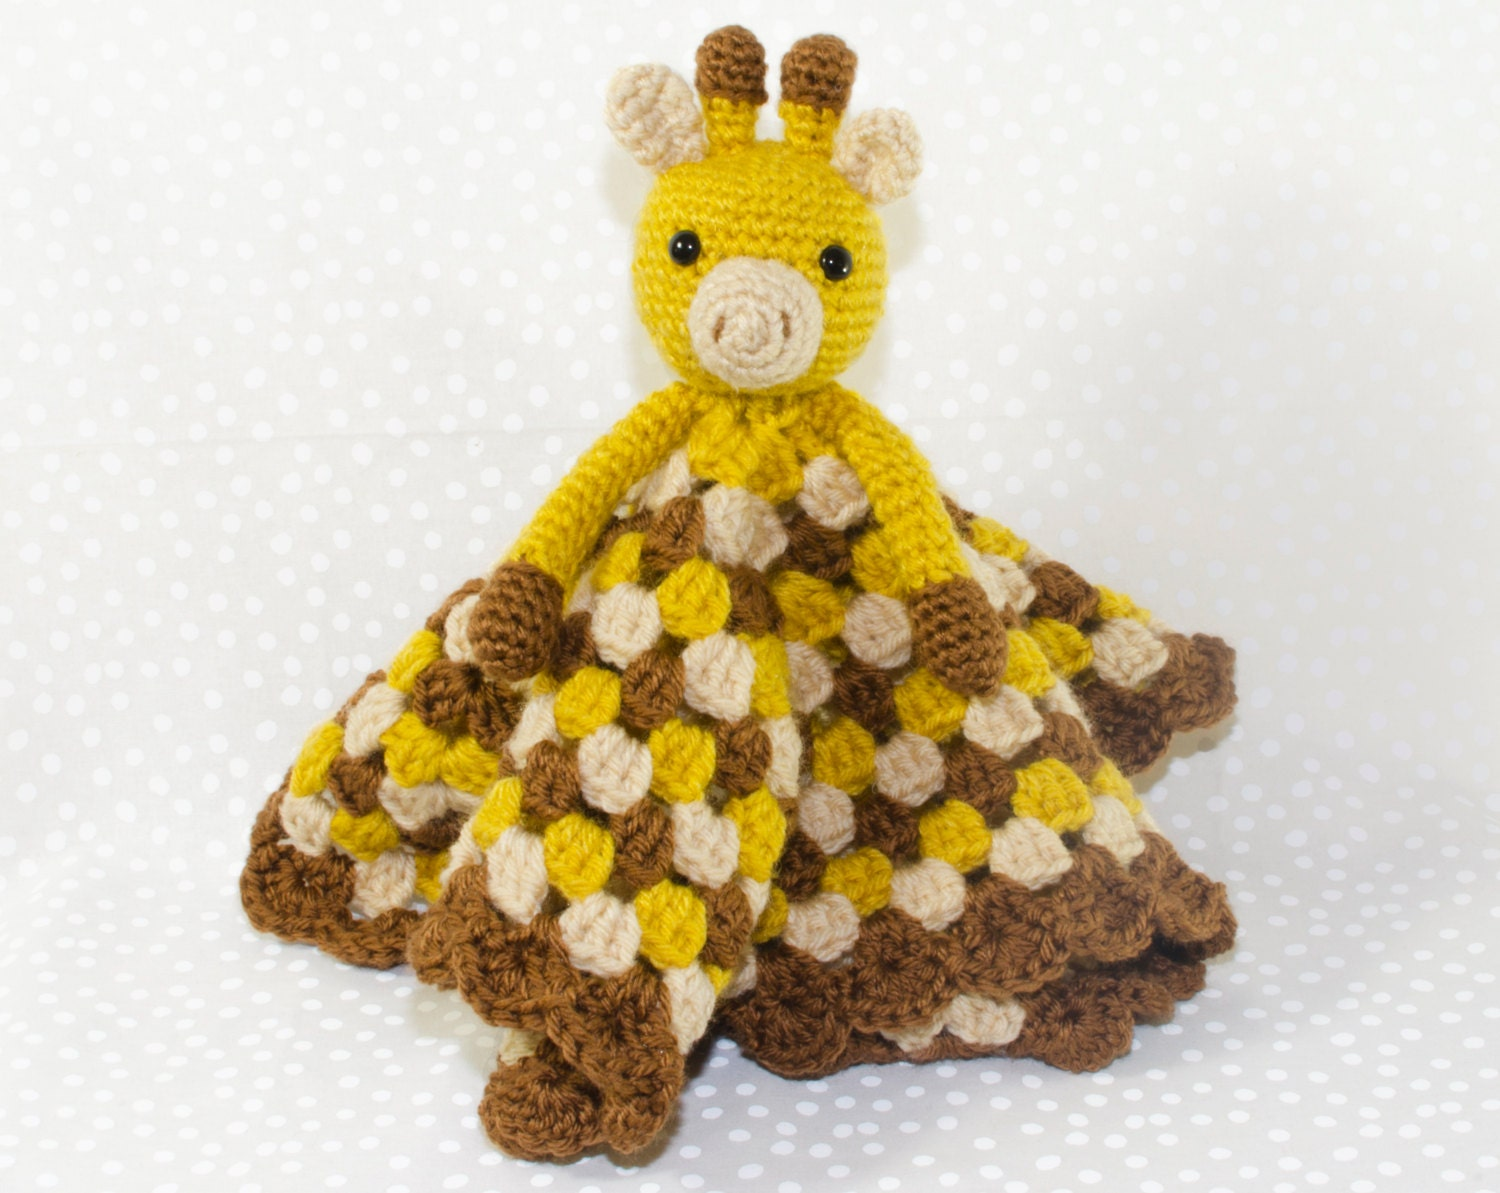 Crochet Pattern Giraffe Blanket : Crochet Giraffe Lovey Security Blanket by AdventuresInYarnia